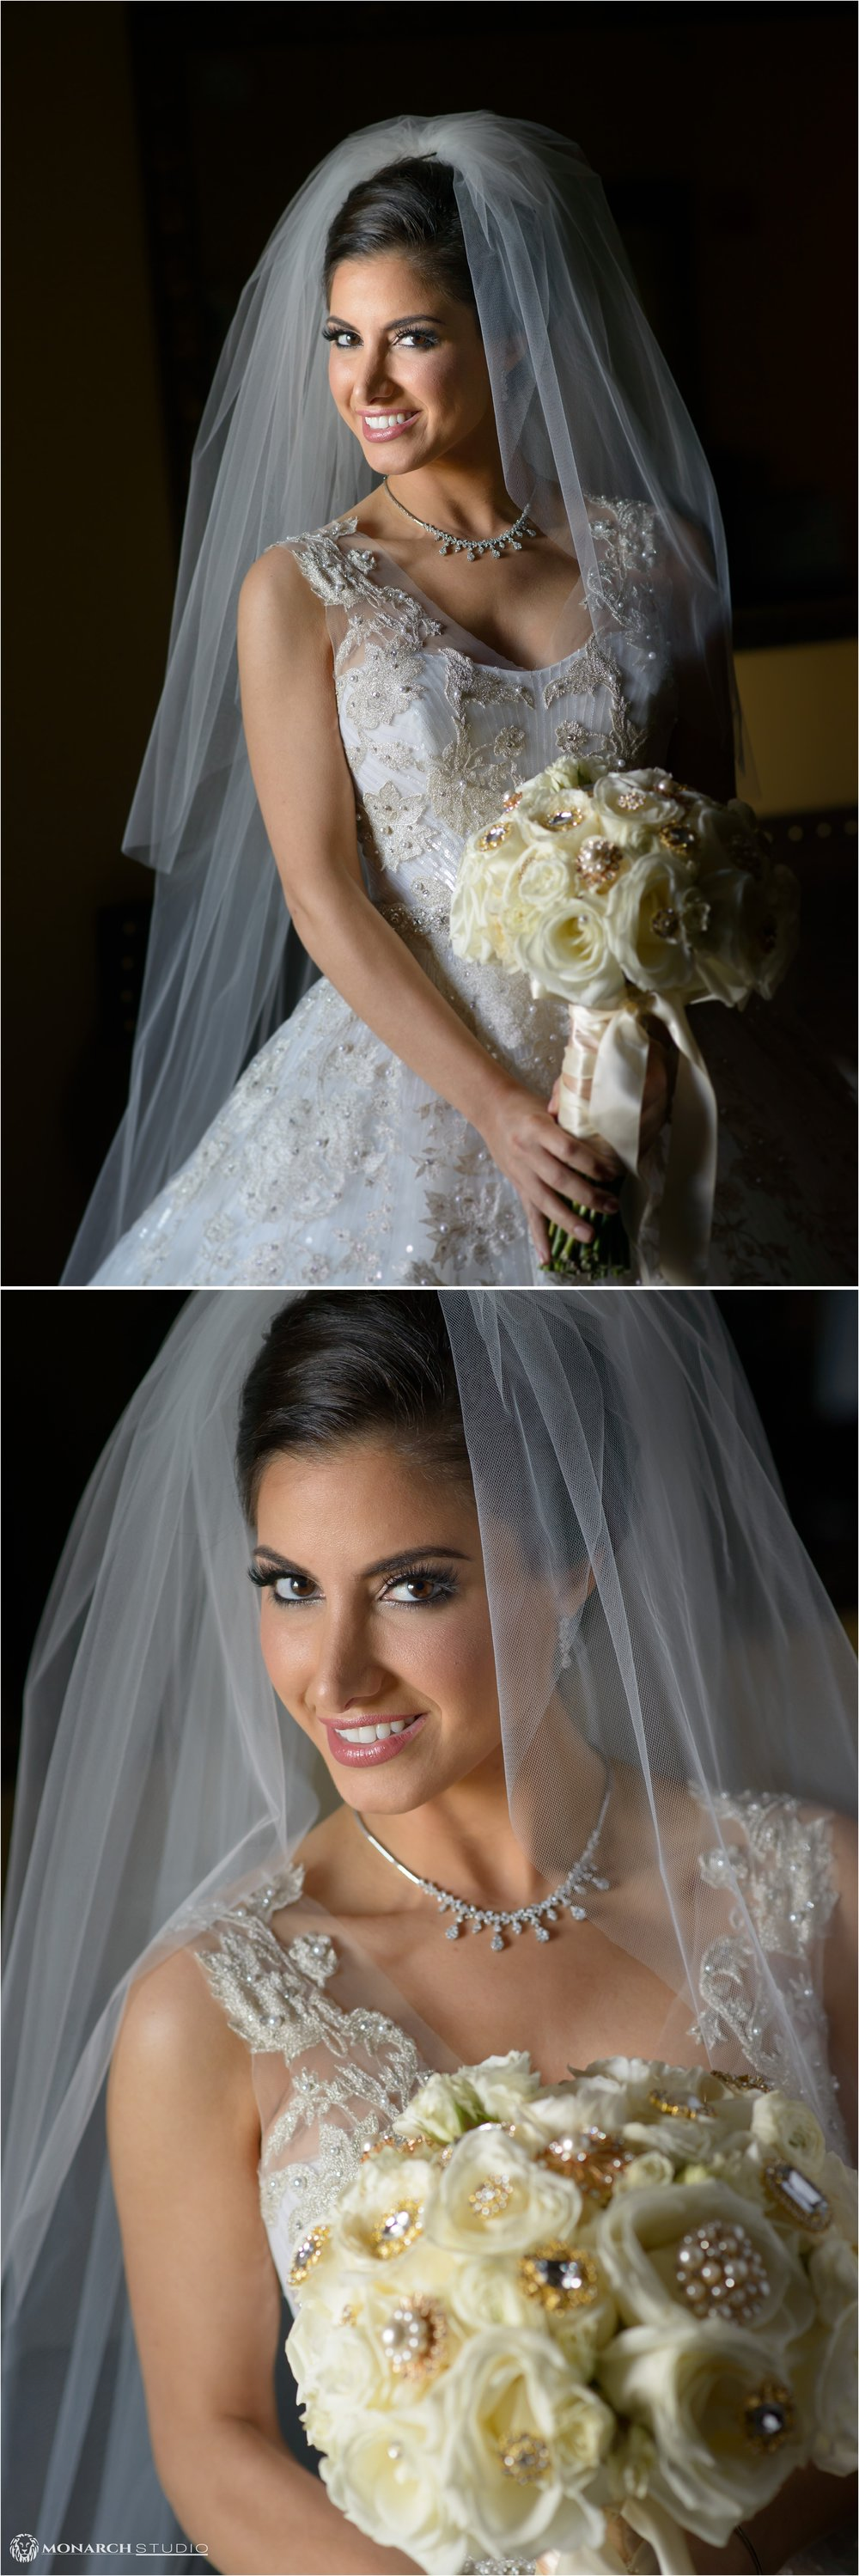 Persian-Aghd-Wedding-Photographer- سفره عقد-012.jpg